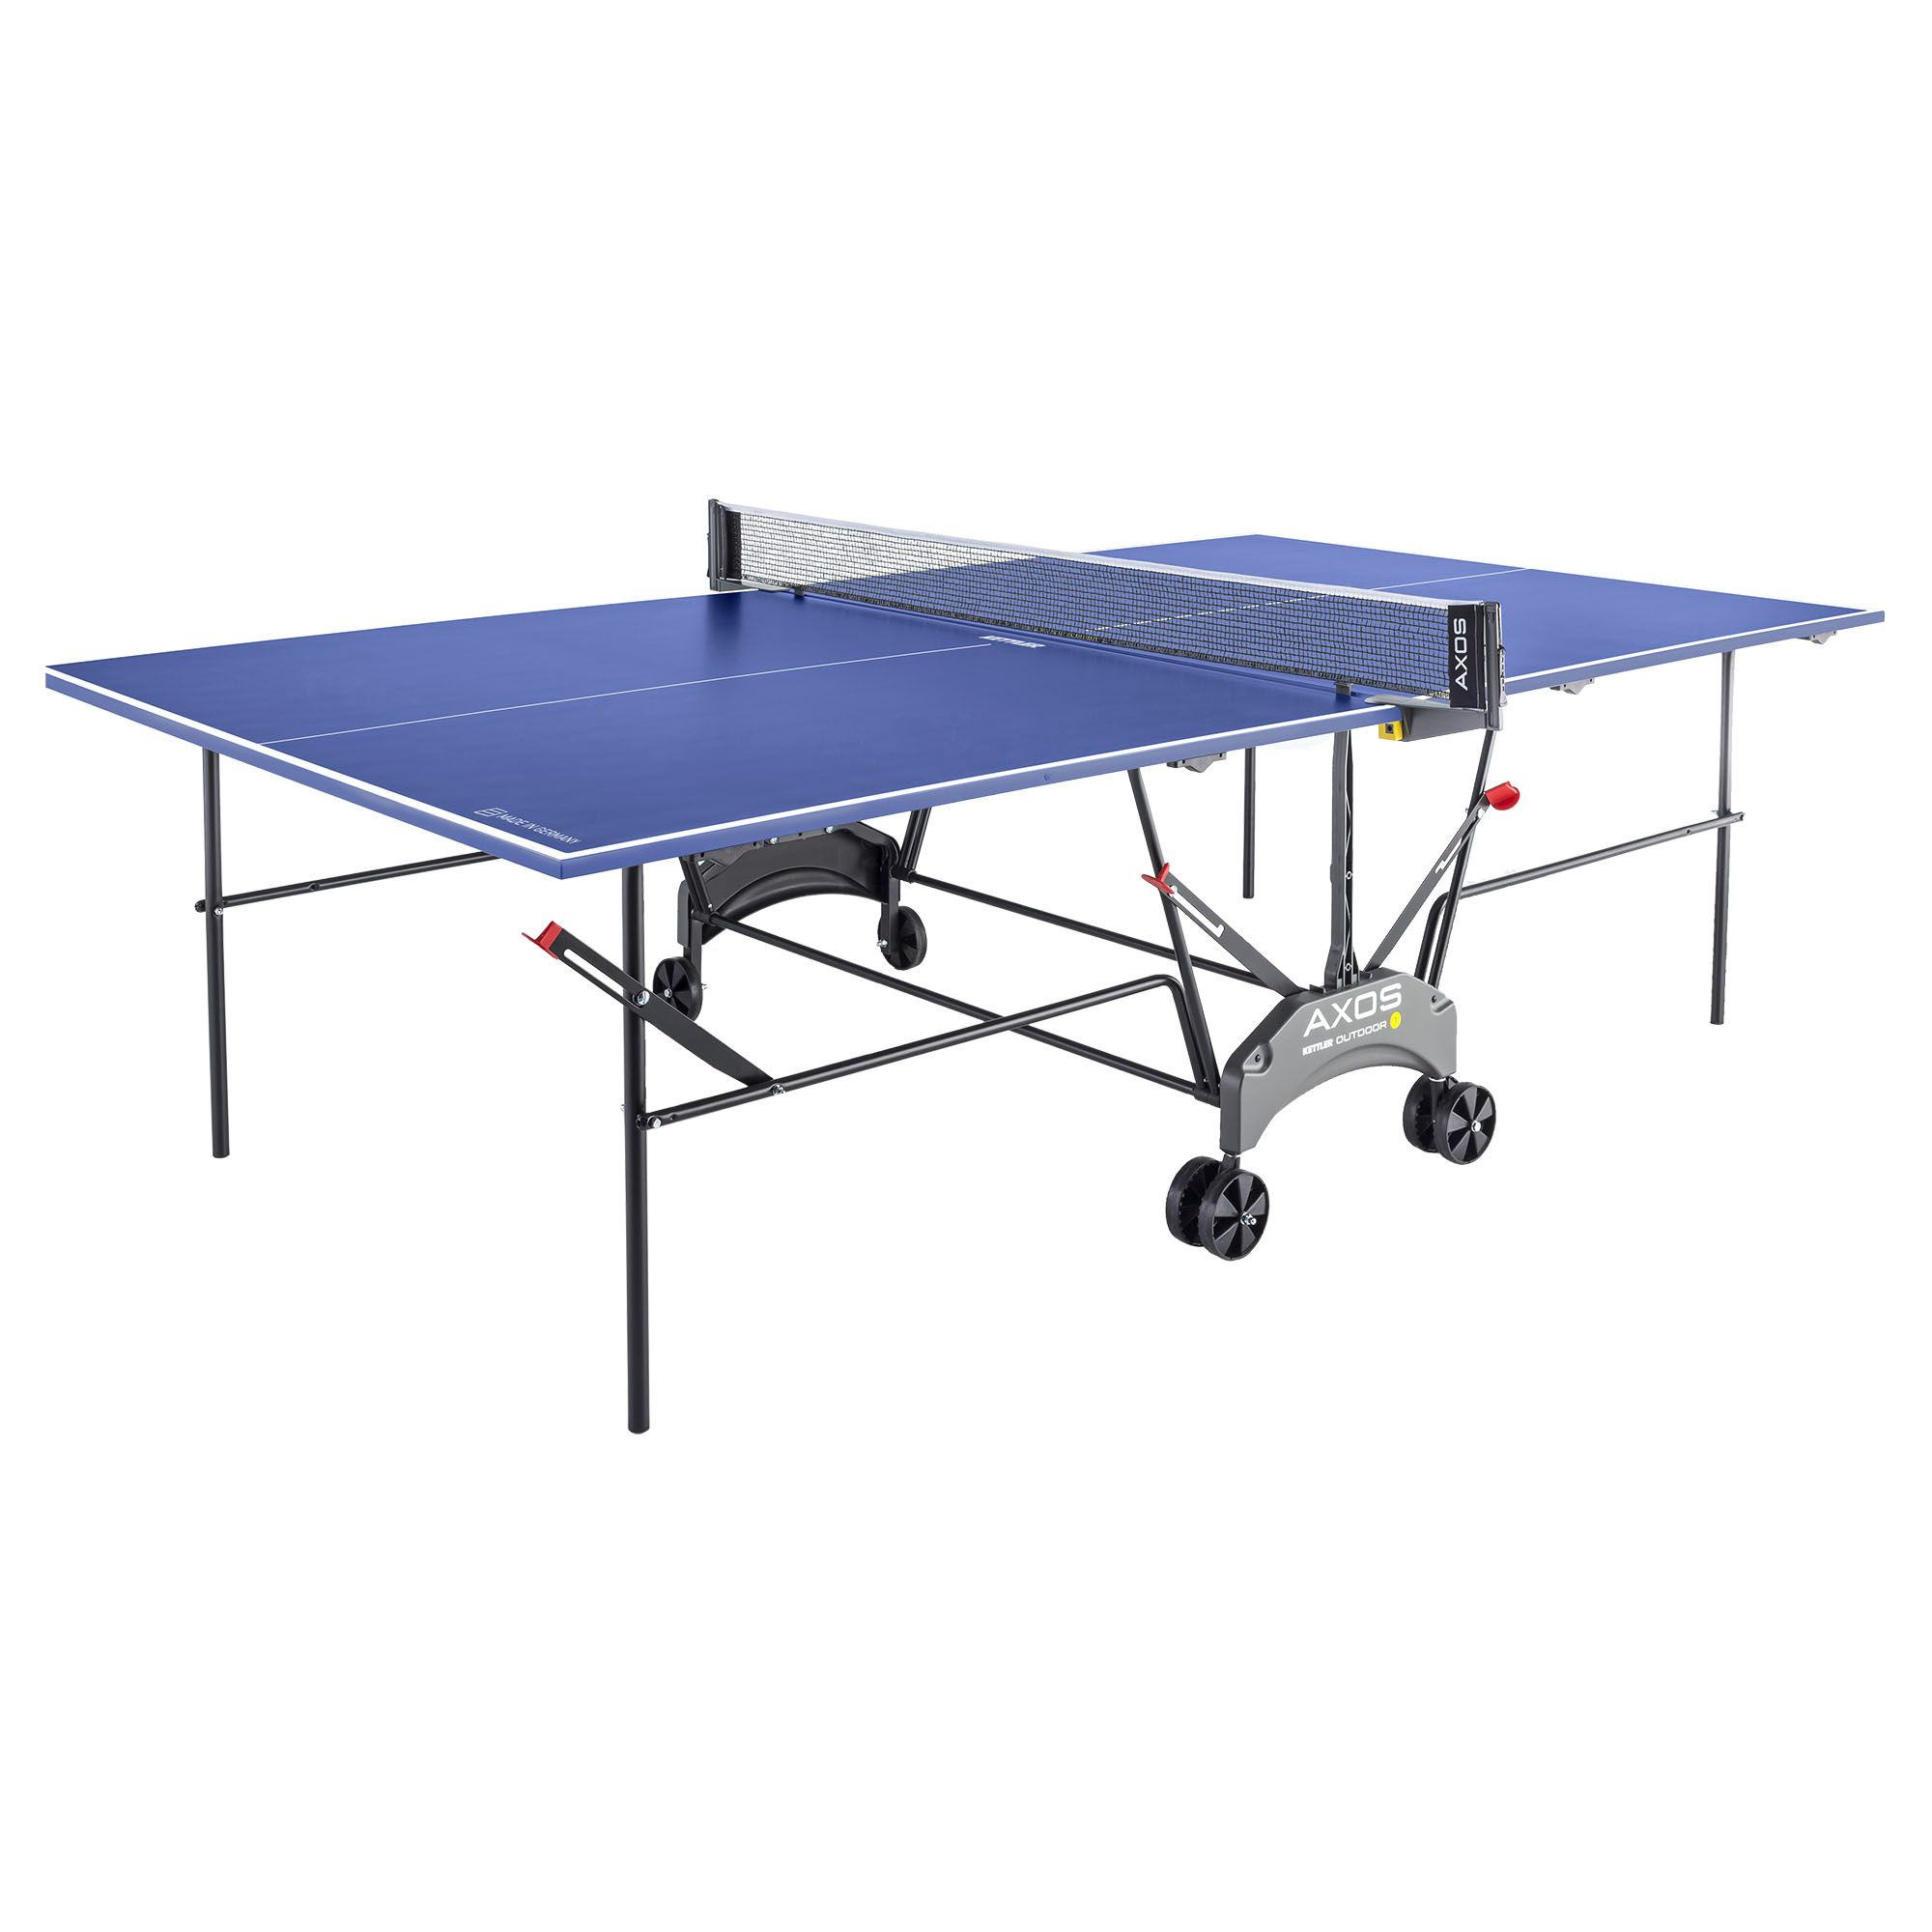 kettler axos 1 outdoor table tennis table. Black Bedroom Furniture Sets. Home Design Ideas